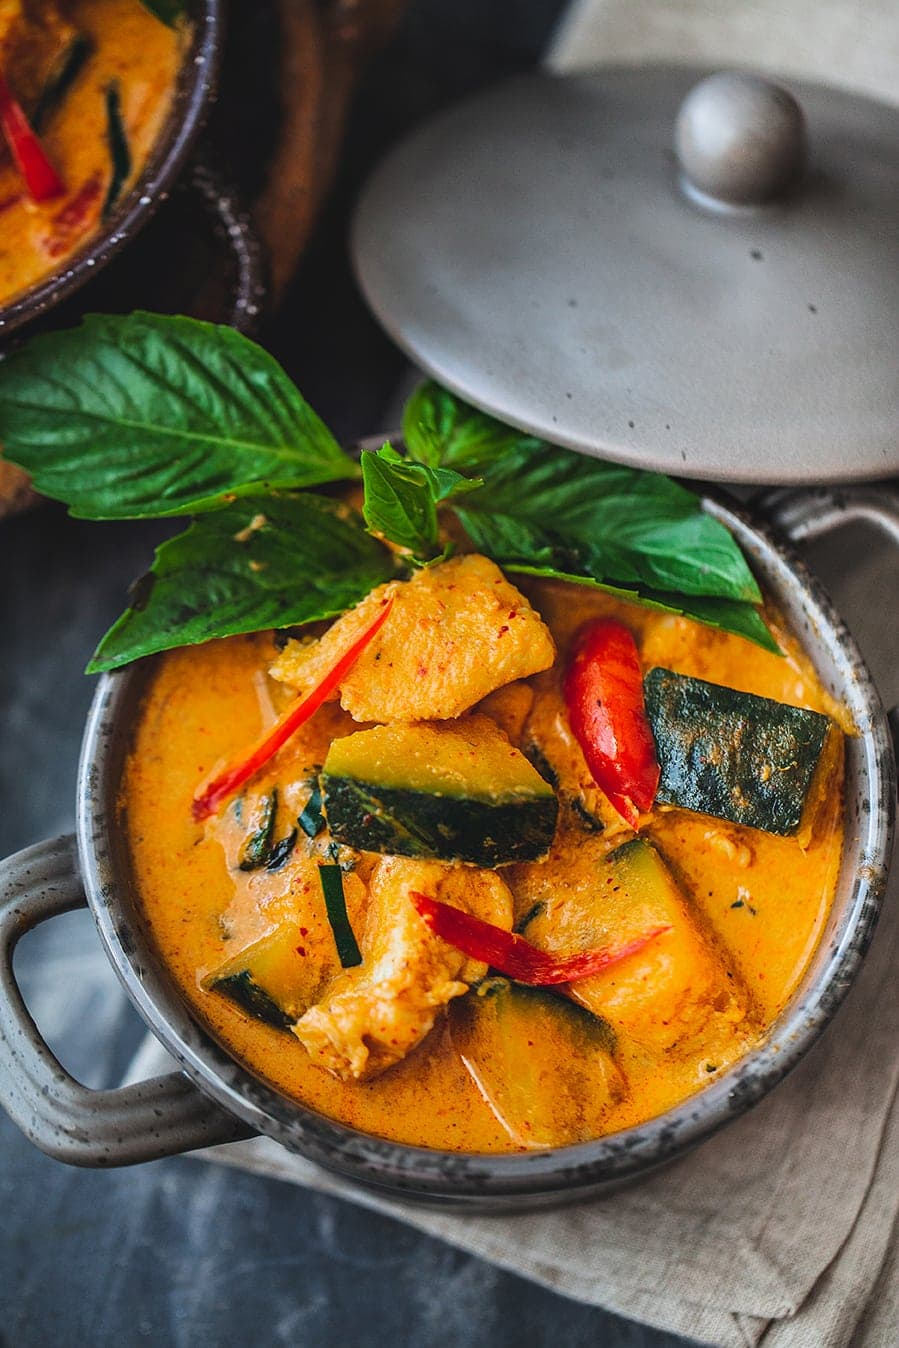 This red Thai curry with chicken and Kabocha squash recipe is an easy and healthy fall dish using Kobucha squash. It is a simple and delicious with a tinge of spiciness from the red curry paste. The extra creamy texture comes from the coconut milk, coconut cream and the Kabocha squash. This easy and healthy Thai curry recipe is just the perfect combination dish for a fall weather.